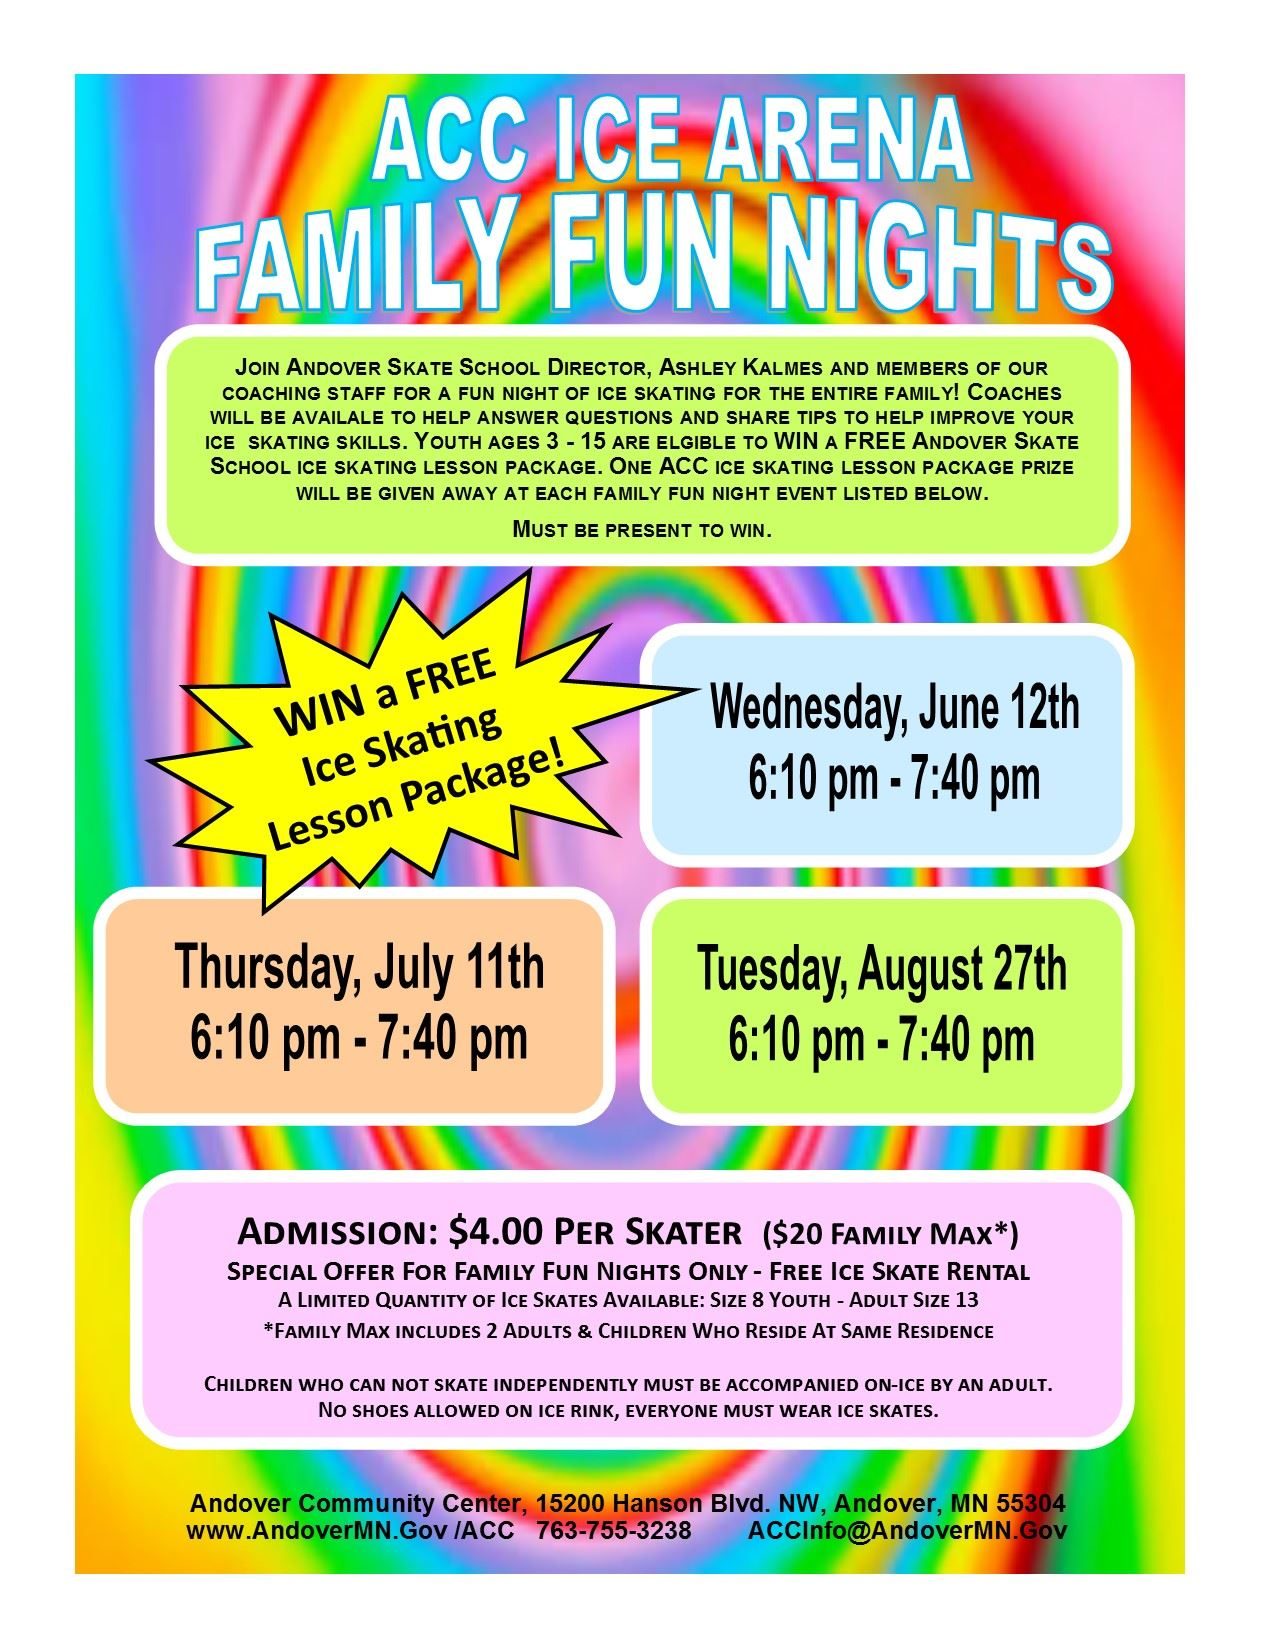 Family Fun Nights at ACC Ice Arena 2019